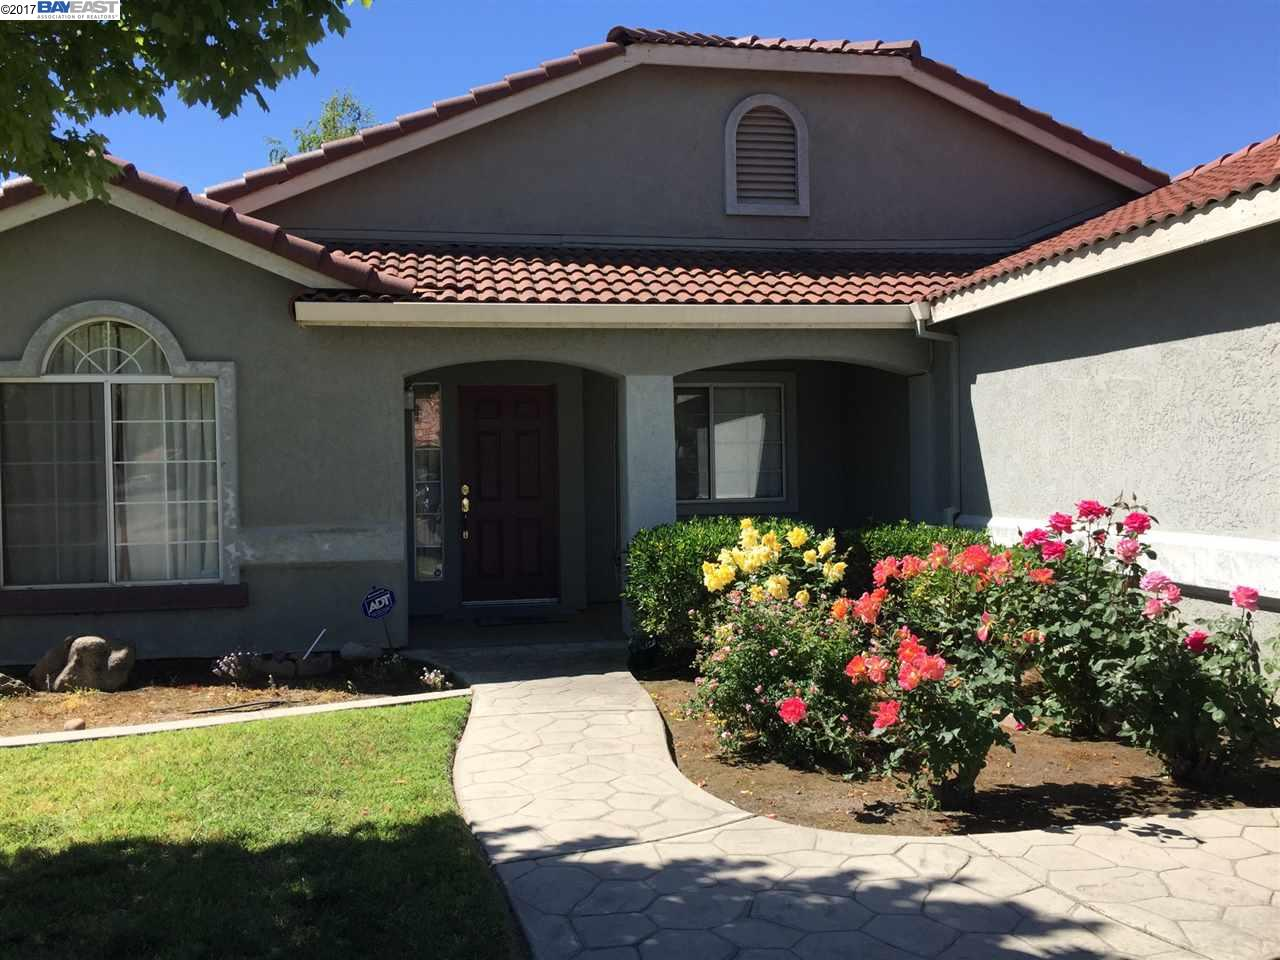 Single Family Home for Sale at 740 Summerfield Drive Atwater, California 95301 United States